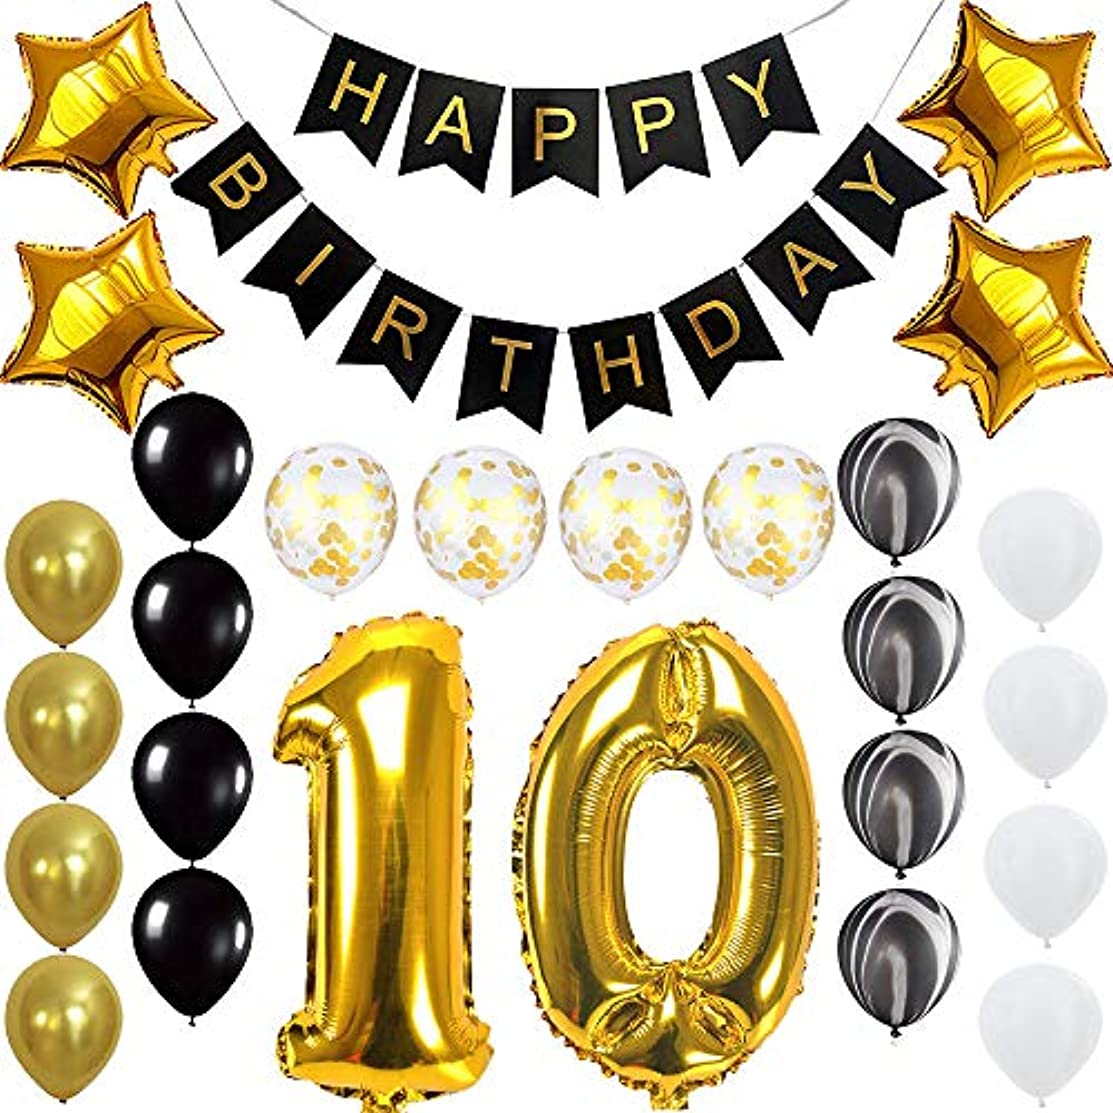 Happy 10th Birthday Banner Balloons Set for 10 Years Old Birthday Party Decoration Supplies Gold Black